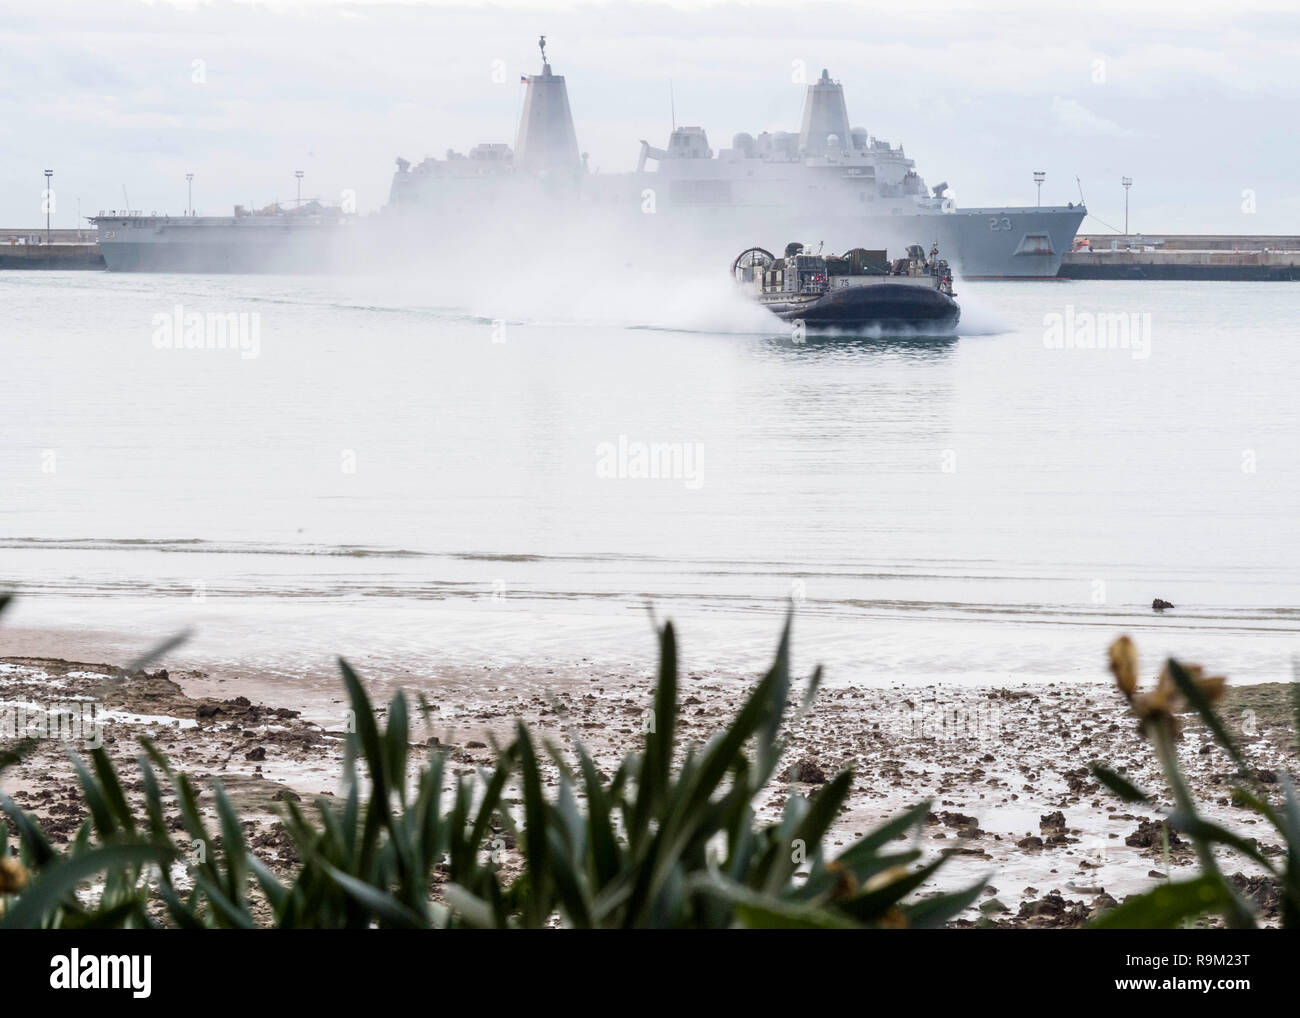 181124-N-PH222-1490 ROTA, SPAIN (Nov. 24, 2018) Landing Craft, Air Cushion (LCAC) 75, attached to Assault Craft Unit 5 and embarked on the San Antonio-class amphibious transport dock ship USS Anchorage (LPD 23), prepares to land on a beach in Rota, Spain, Nov. 24, 2018. Anchorage and embarked 13th Marine Expeditionary Unit are deployed to the U.S. 6th Fleet area of operations as a crisis response force in support of regional partners as well as to promote U.S. national security interests in Europe and Africa. (U.S. Navy photo by Mass Communication Specialist 3rd Class Ryan M. Breeden/Released) - Stock Image